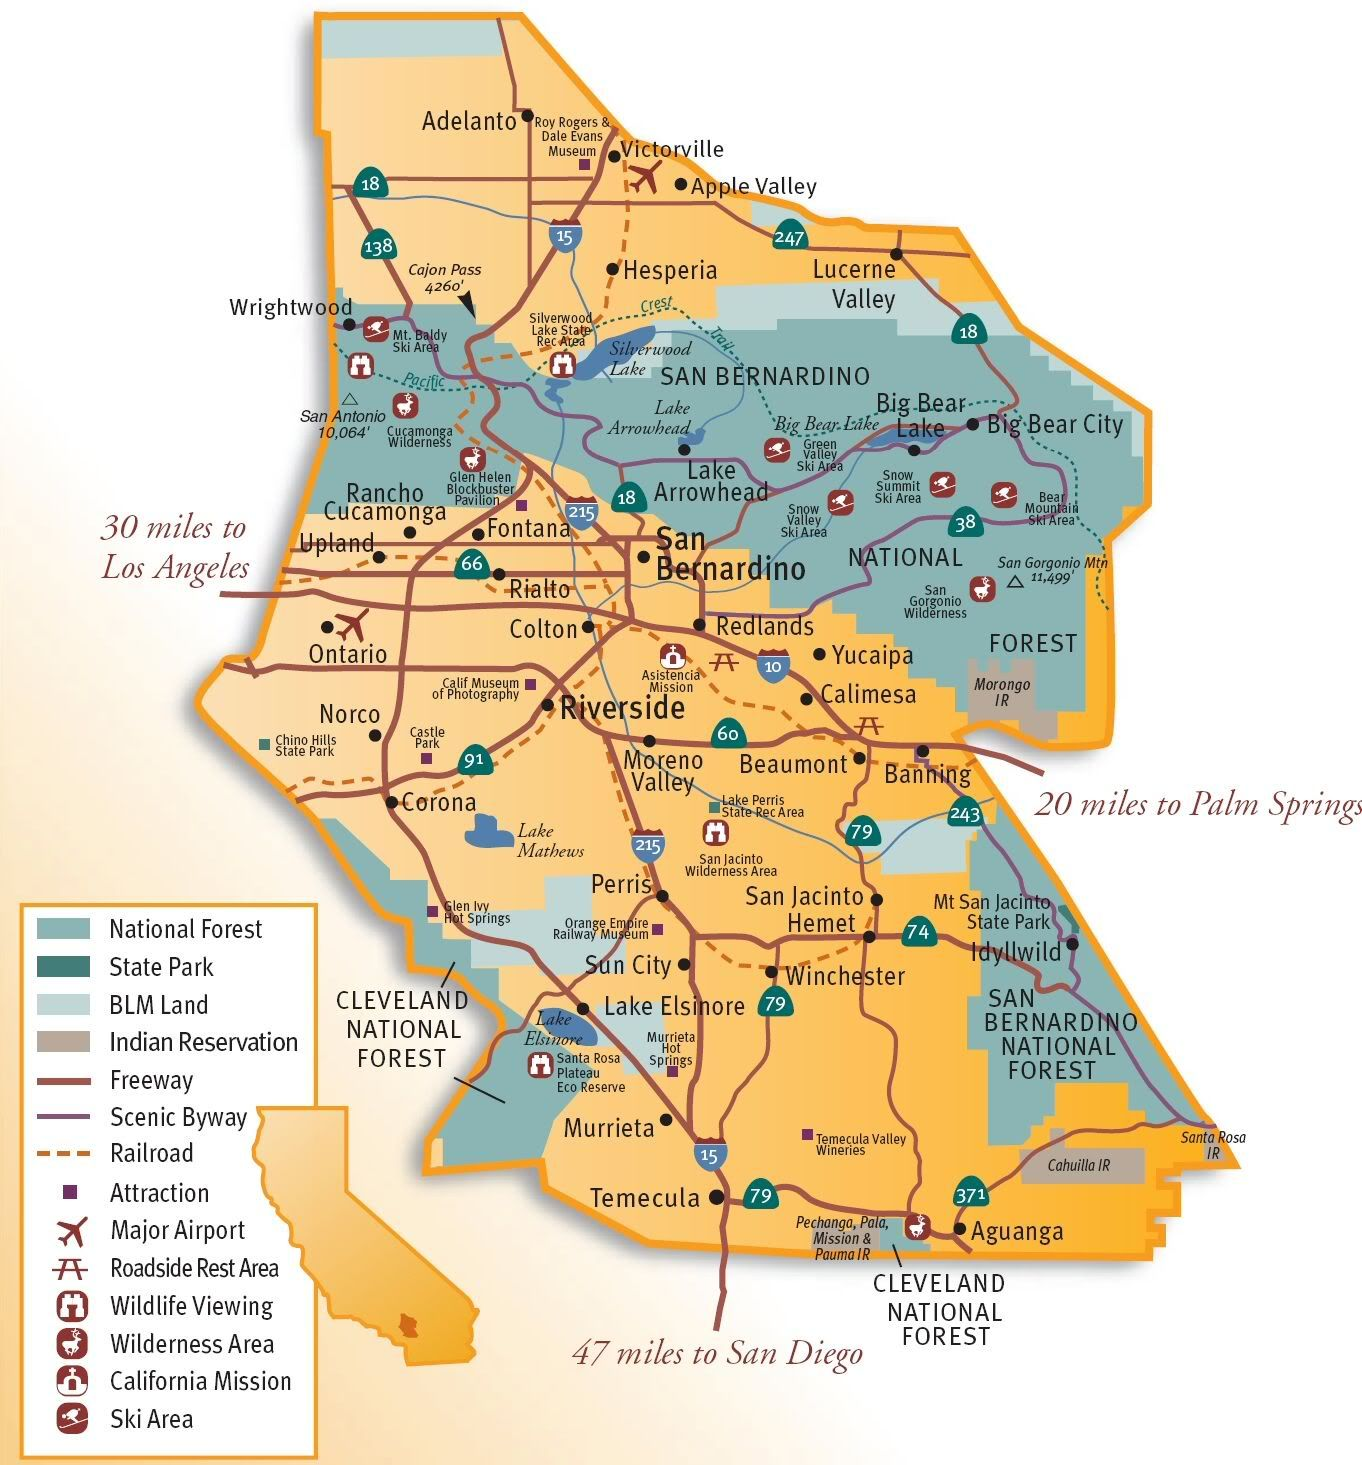 inland empire map - Google Search | Warehousing in the IE ... on map of the central coast california, map of the piedmont triad, san bernardino, map of the dc metro area, map of the orange county, orange county, map of the san joaquin valley, big bear lake, southern california, map of the imperial valley, imperial county, map of the merced county, map of the san francisco, san fernando valley, imperial valley, map of the san diego, map of the gulf south, map of the san bernardino, map of the gaslamp quarter, map of the greater bay area, map of the sf peninsula, high desert, map of the mojave river, greater los angeles area, coachella valley, san bernardino county, map of the southern border, map of the eastern sierras, ontario international airport, california central valley, san diego county, map of the big sur, map of the rio grande valley, los angeles metropolitan area, riverside county, map of the ida,